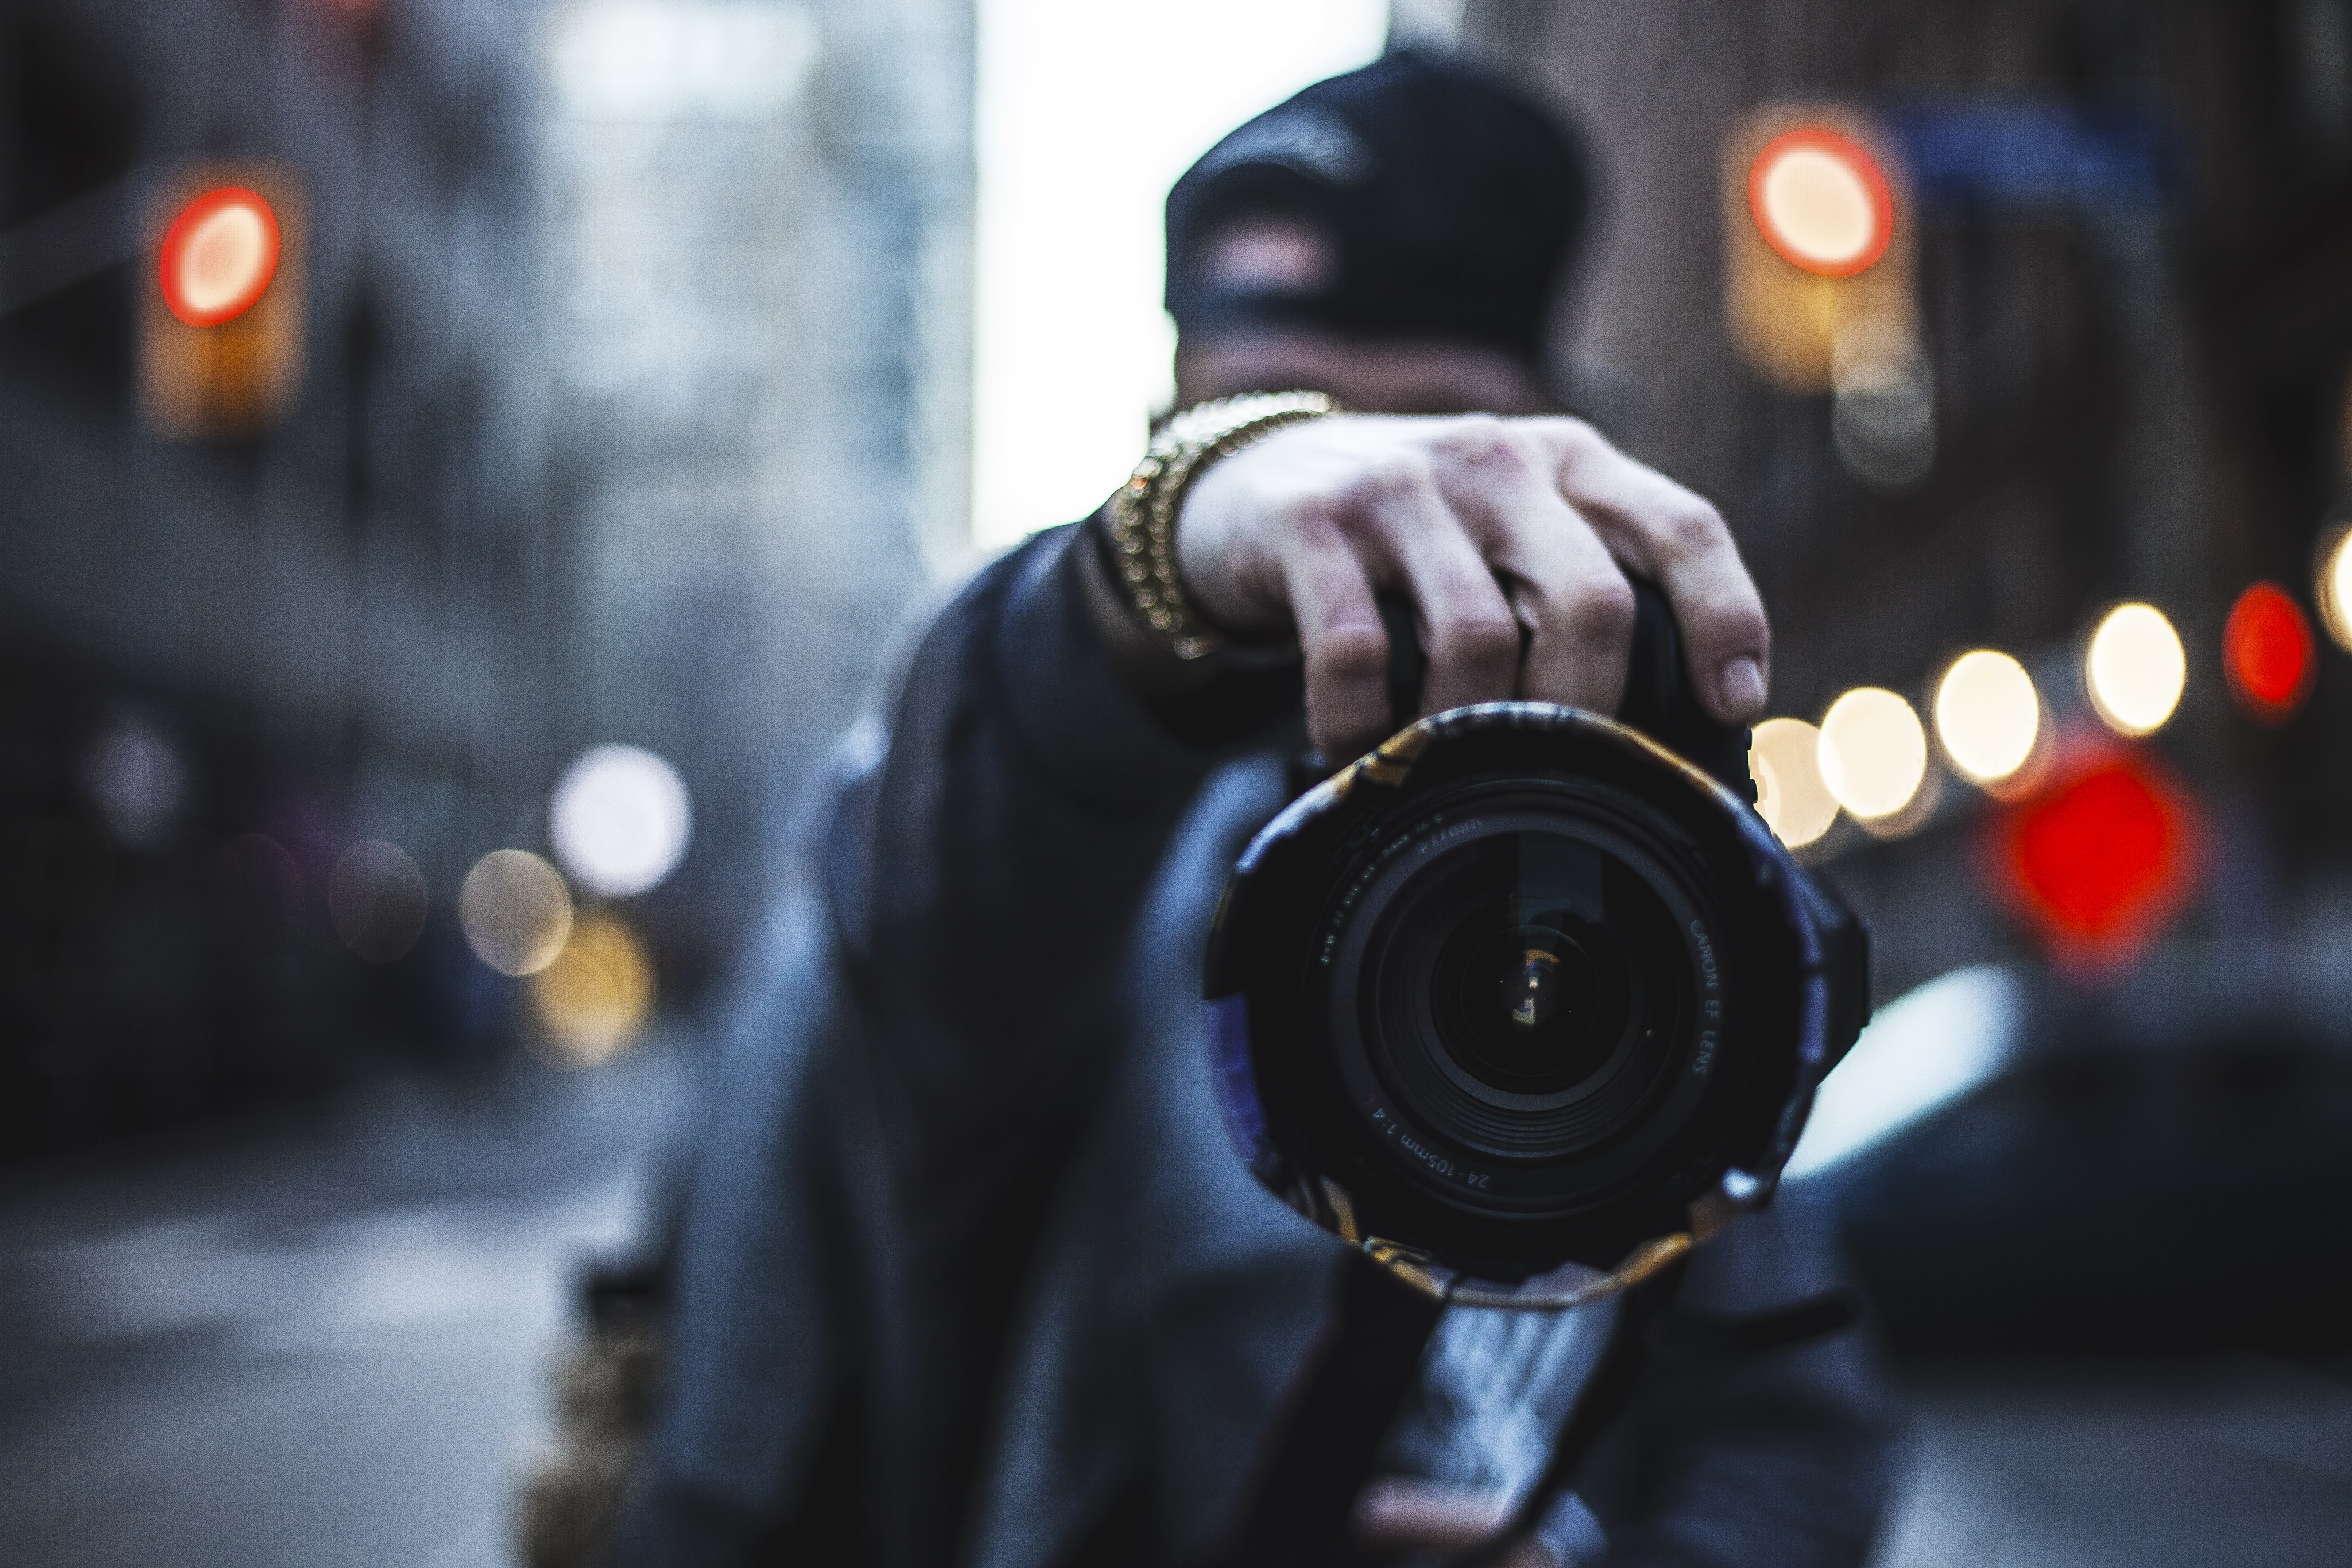 A photographer wearing shiny bracelets and holding a Canon camera in Toronto